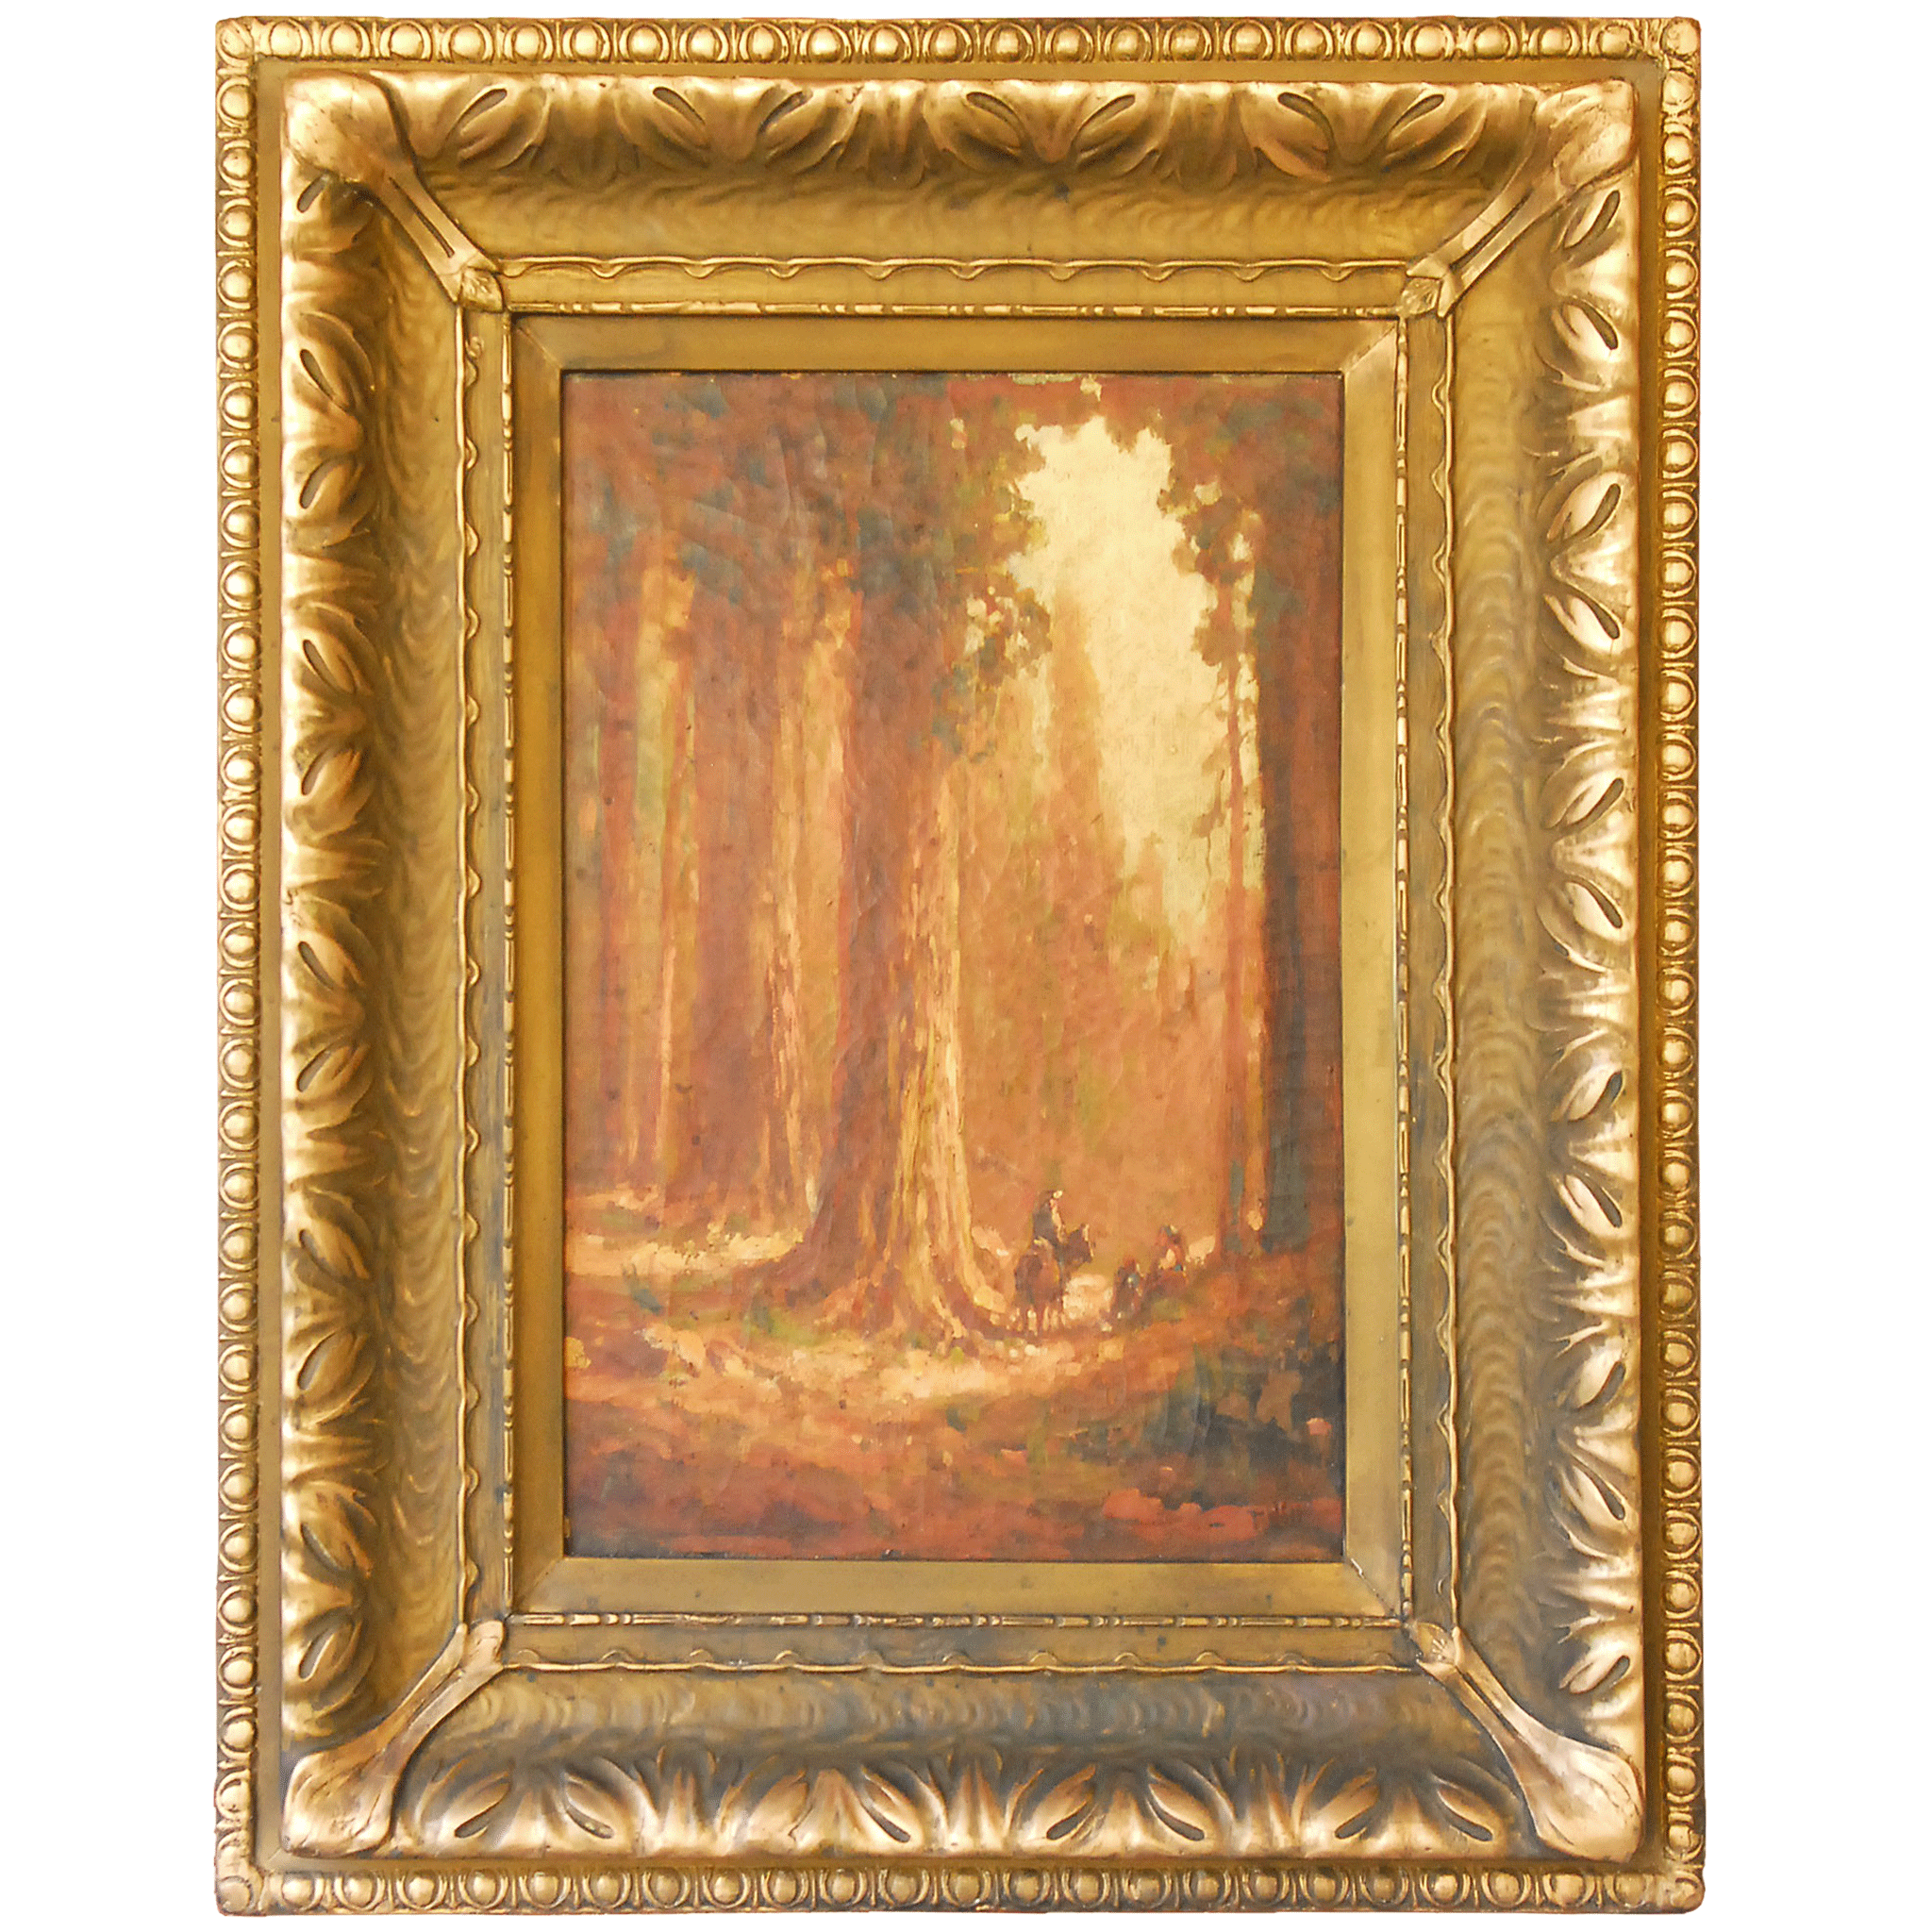 California Redwoods by Thomas Hill Oil on Canvas